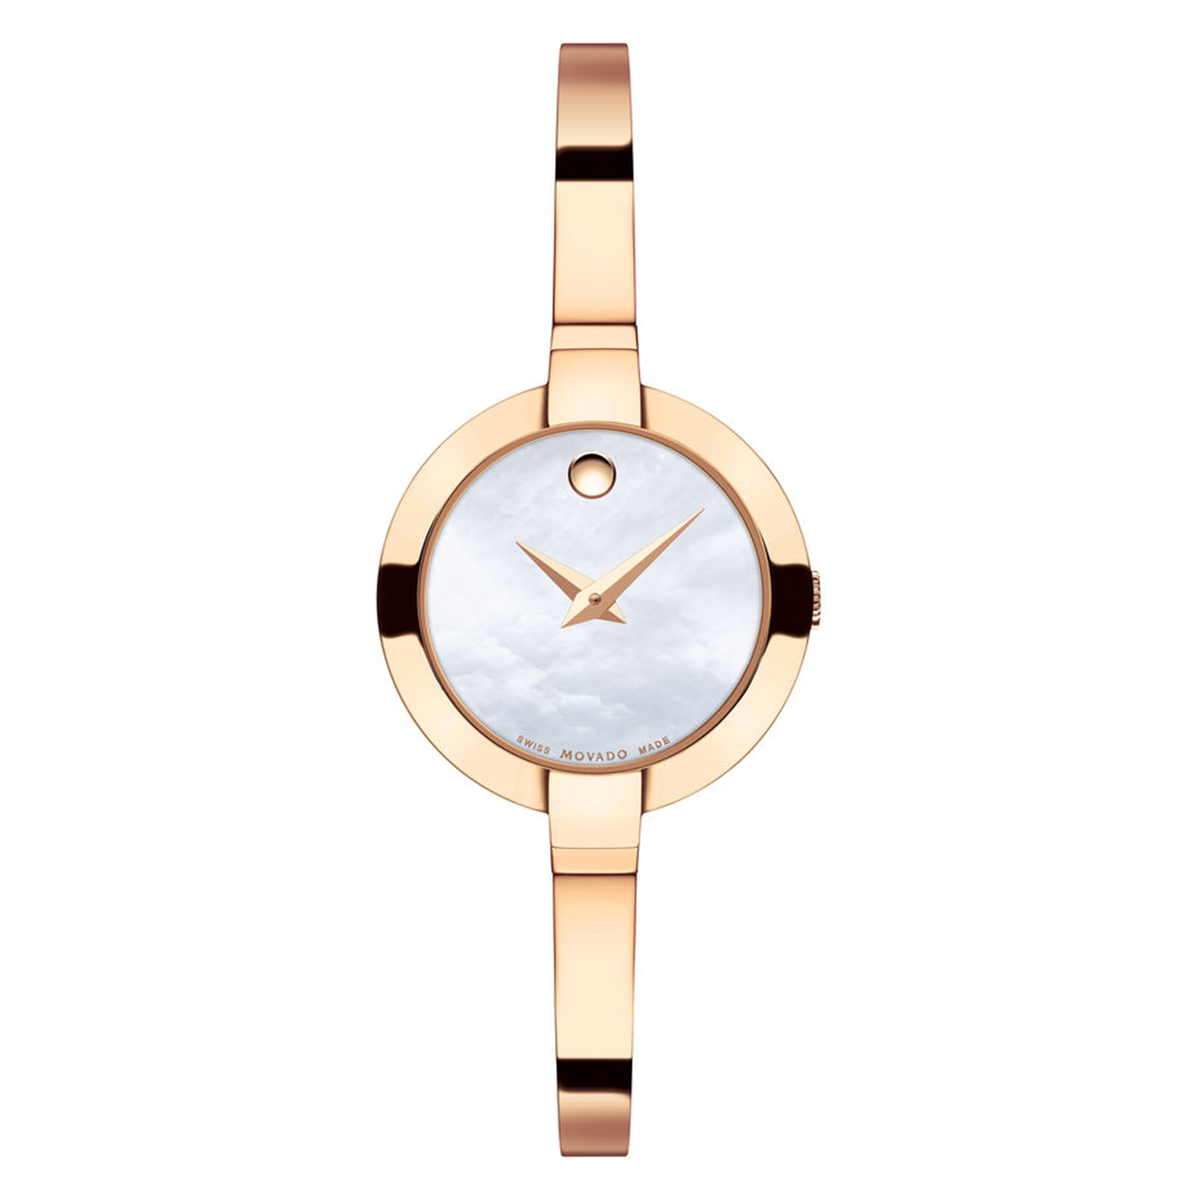 Ladies Movado Bela - Rose Gold Tone with MOP